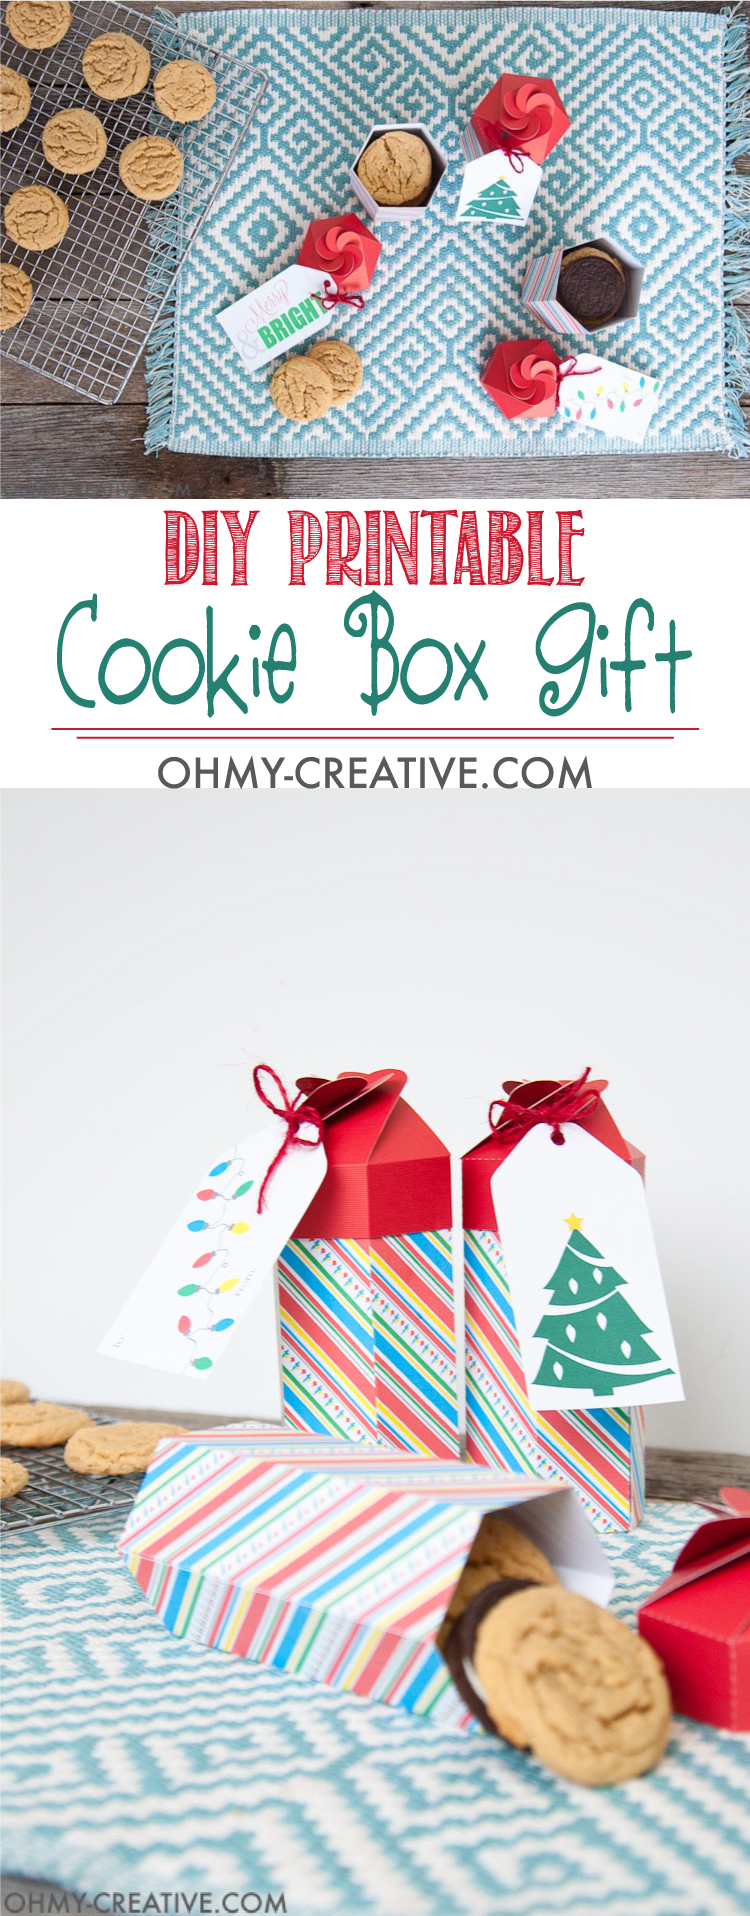 Need a last minute gift for neighbors or friends? These Christmas folded treat boxes are perfect for filling with your favorite cookies. The printable file is ready for you to make this DIY cookie box gift today! | OHMY-CREATIVE.COM